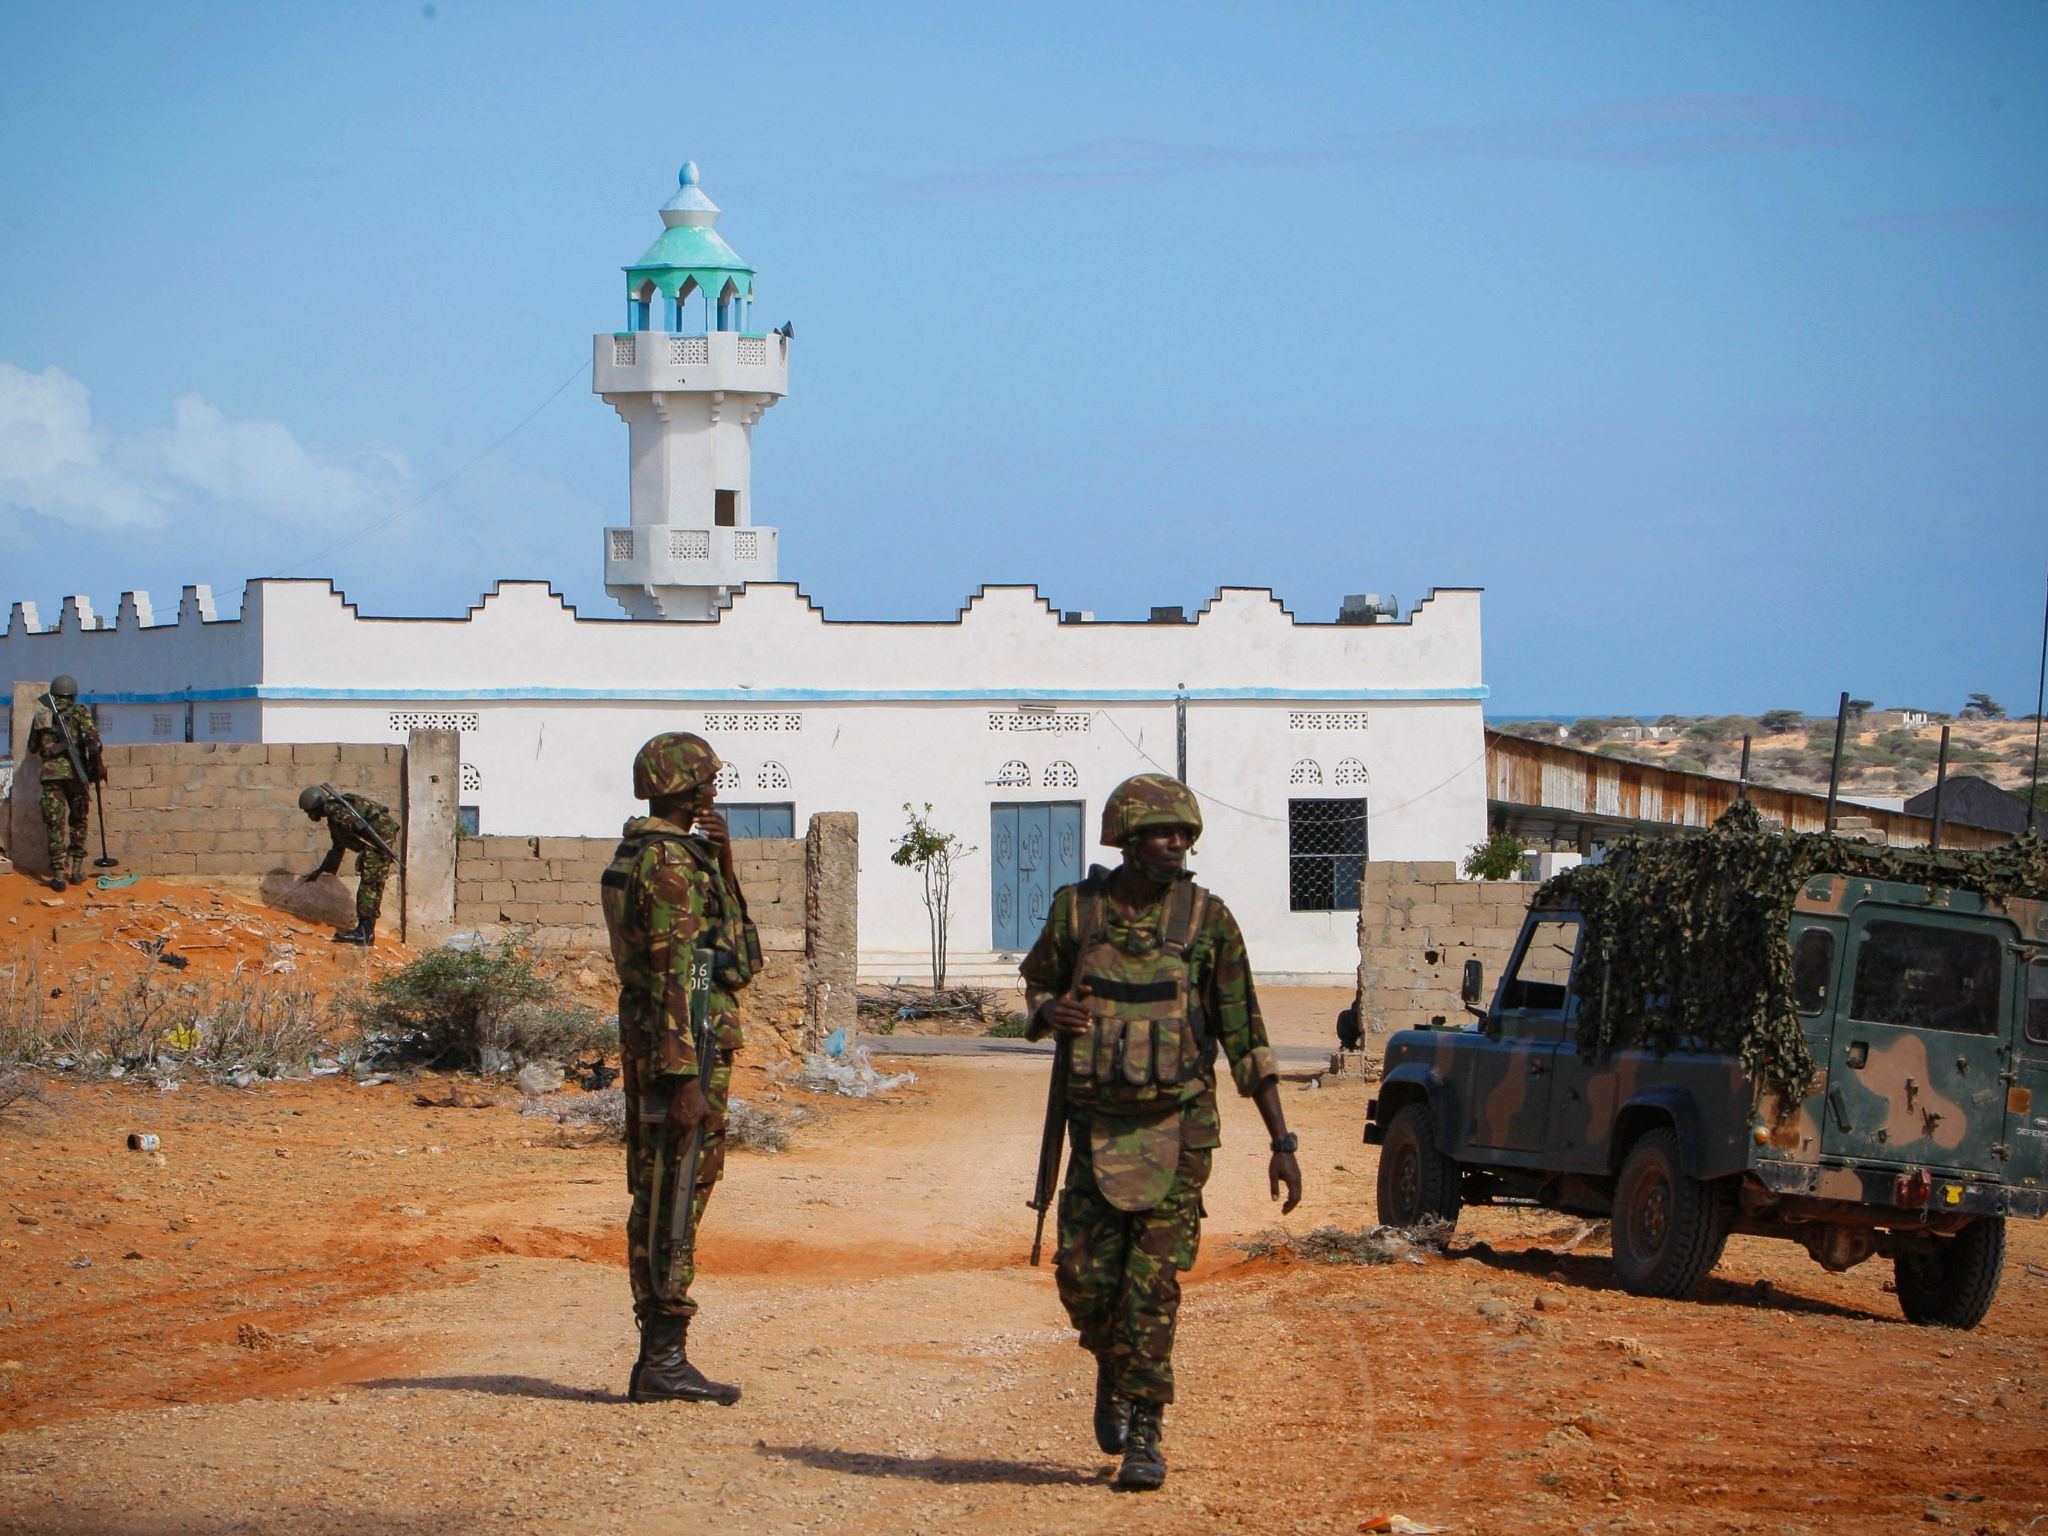 The US is quietly waging war in Somalia — and Trump has made it worse